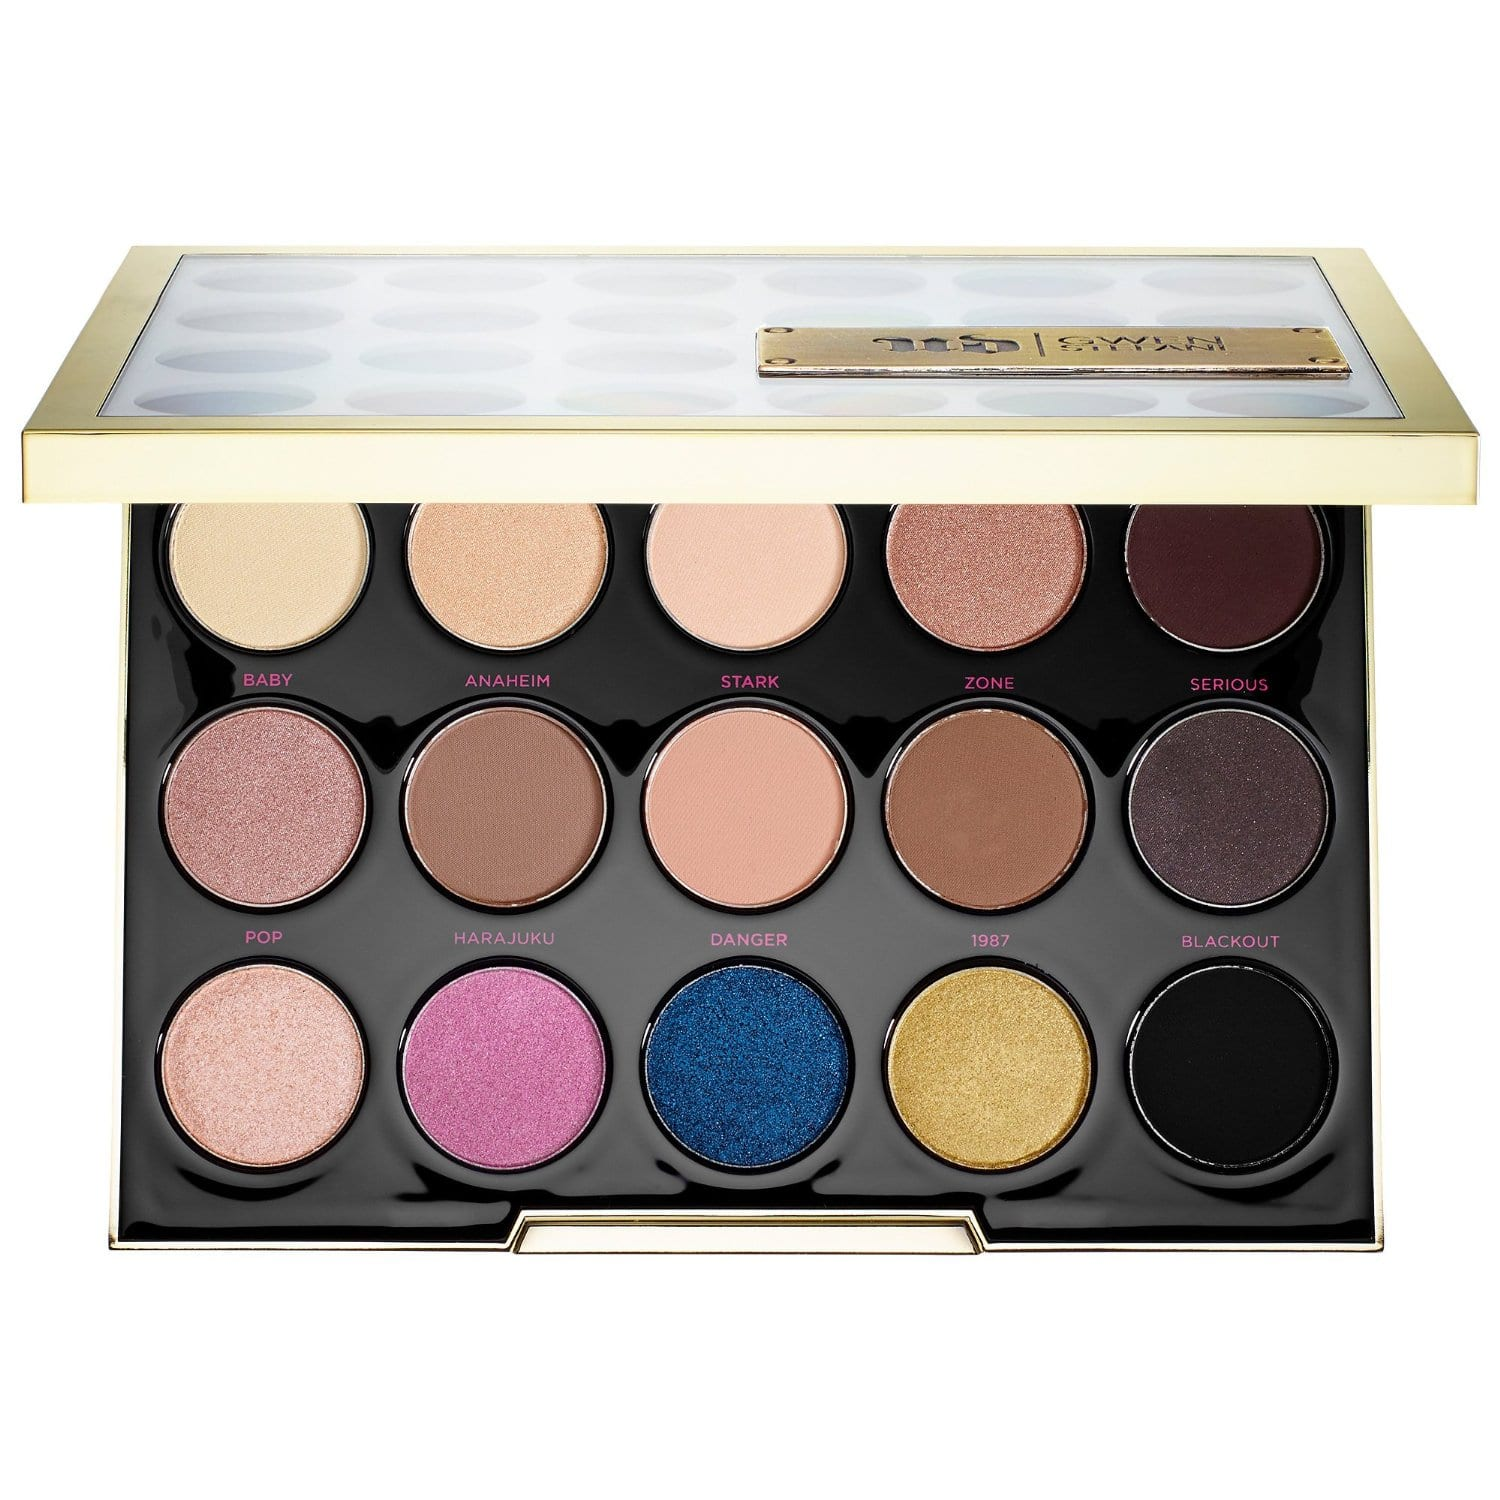 Urban Decay Gwen Stefani Eyeshadow Palette  $25 + Free S/H on $50+